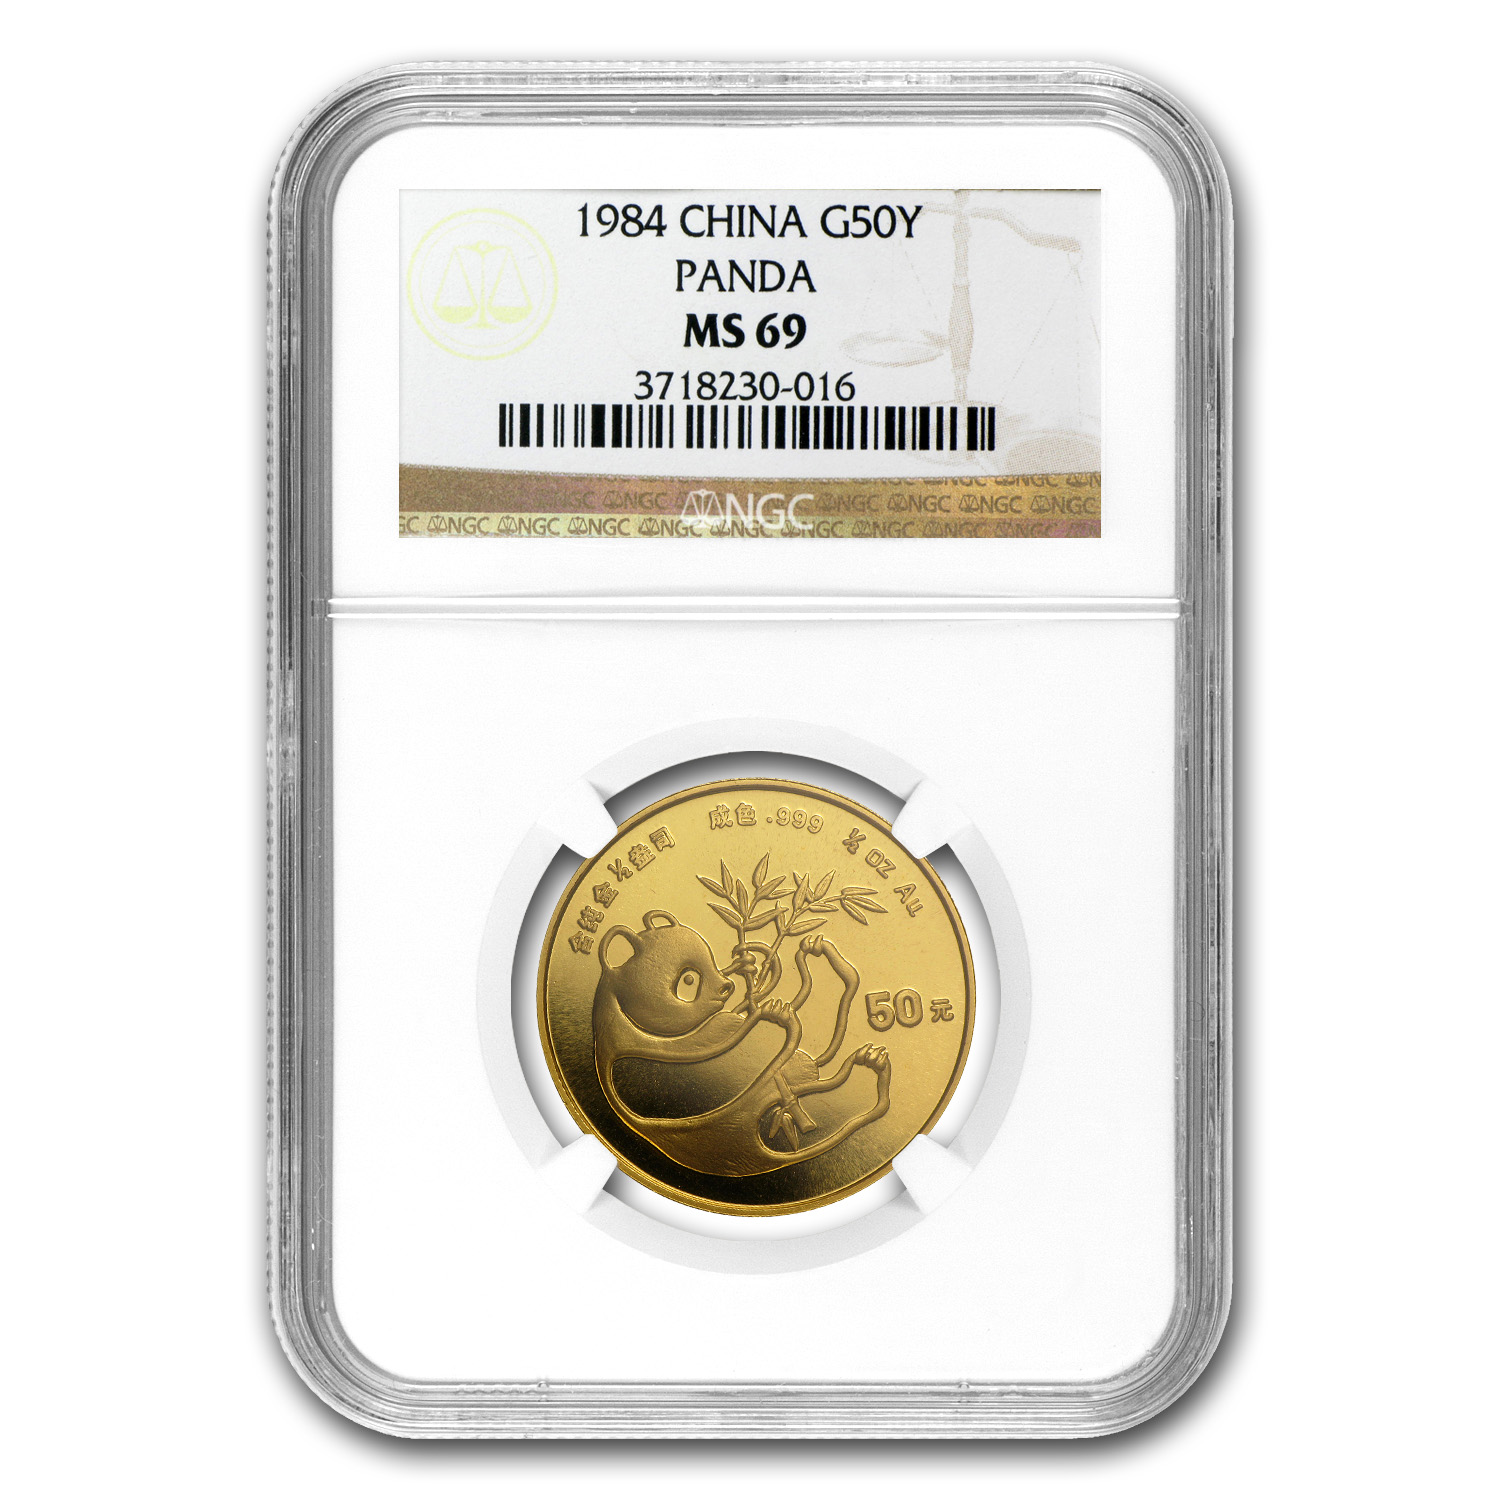 1984 1/2 oz Gold Chinese Panda MS-69 NGC